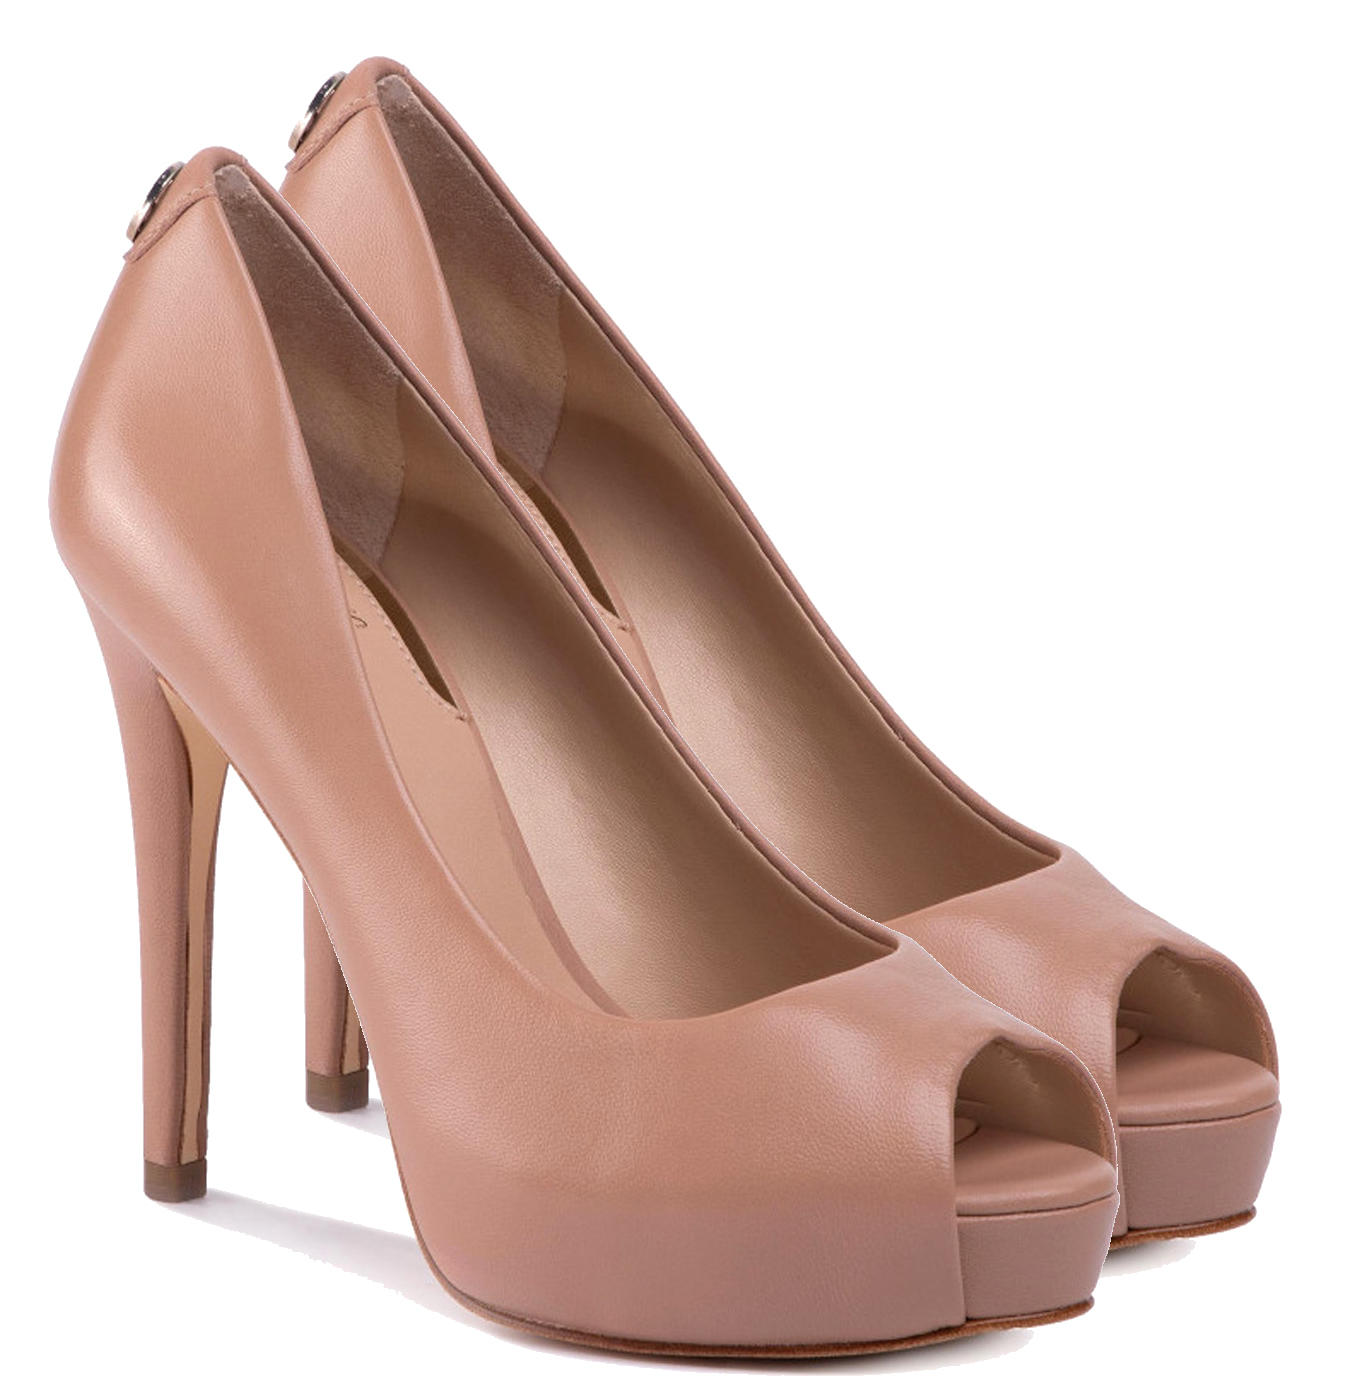 Guess Hadie Open Toe Pumps, In Leather